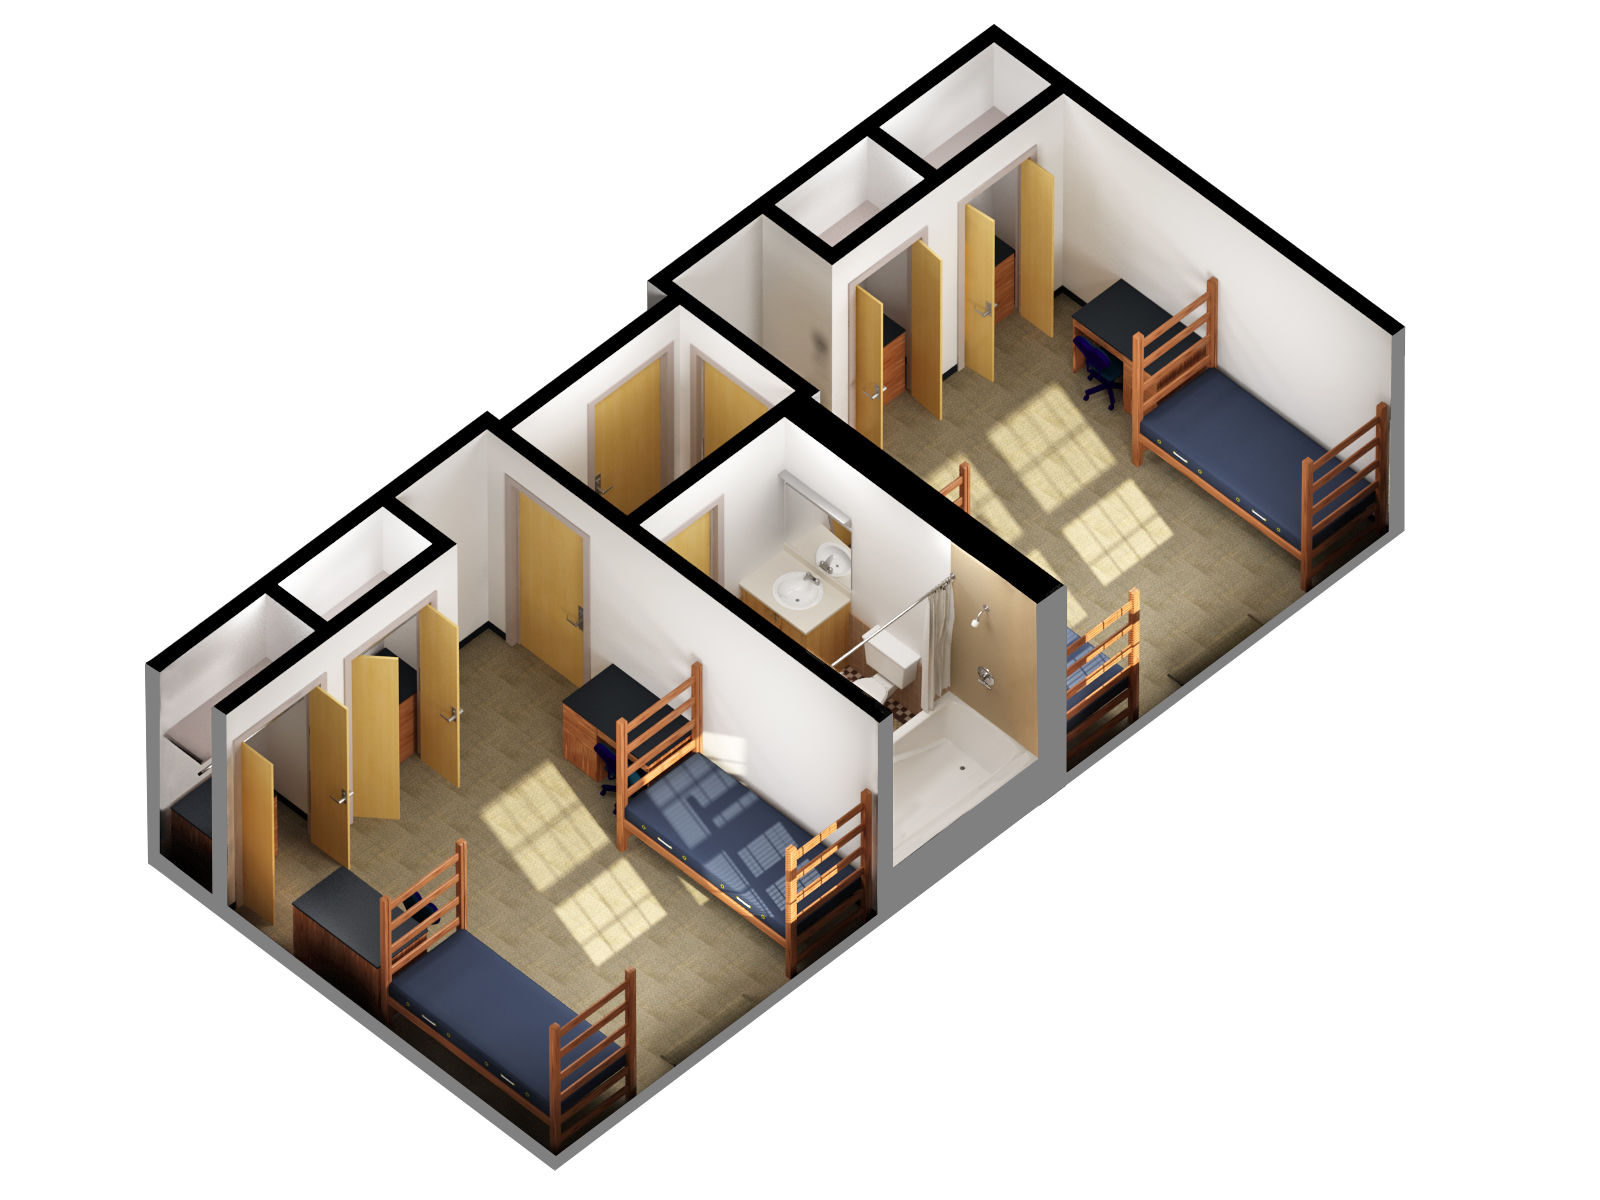 Awesome Design Of The Simple Floor Plans With Two Rooms Added With One Single Bathroom